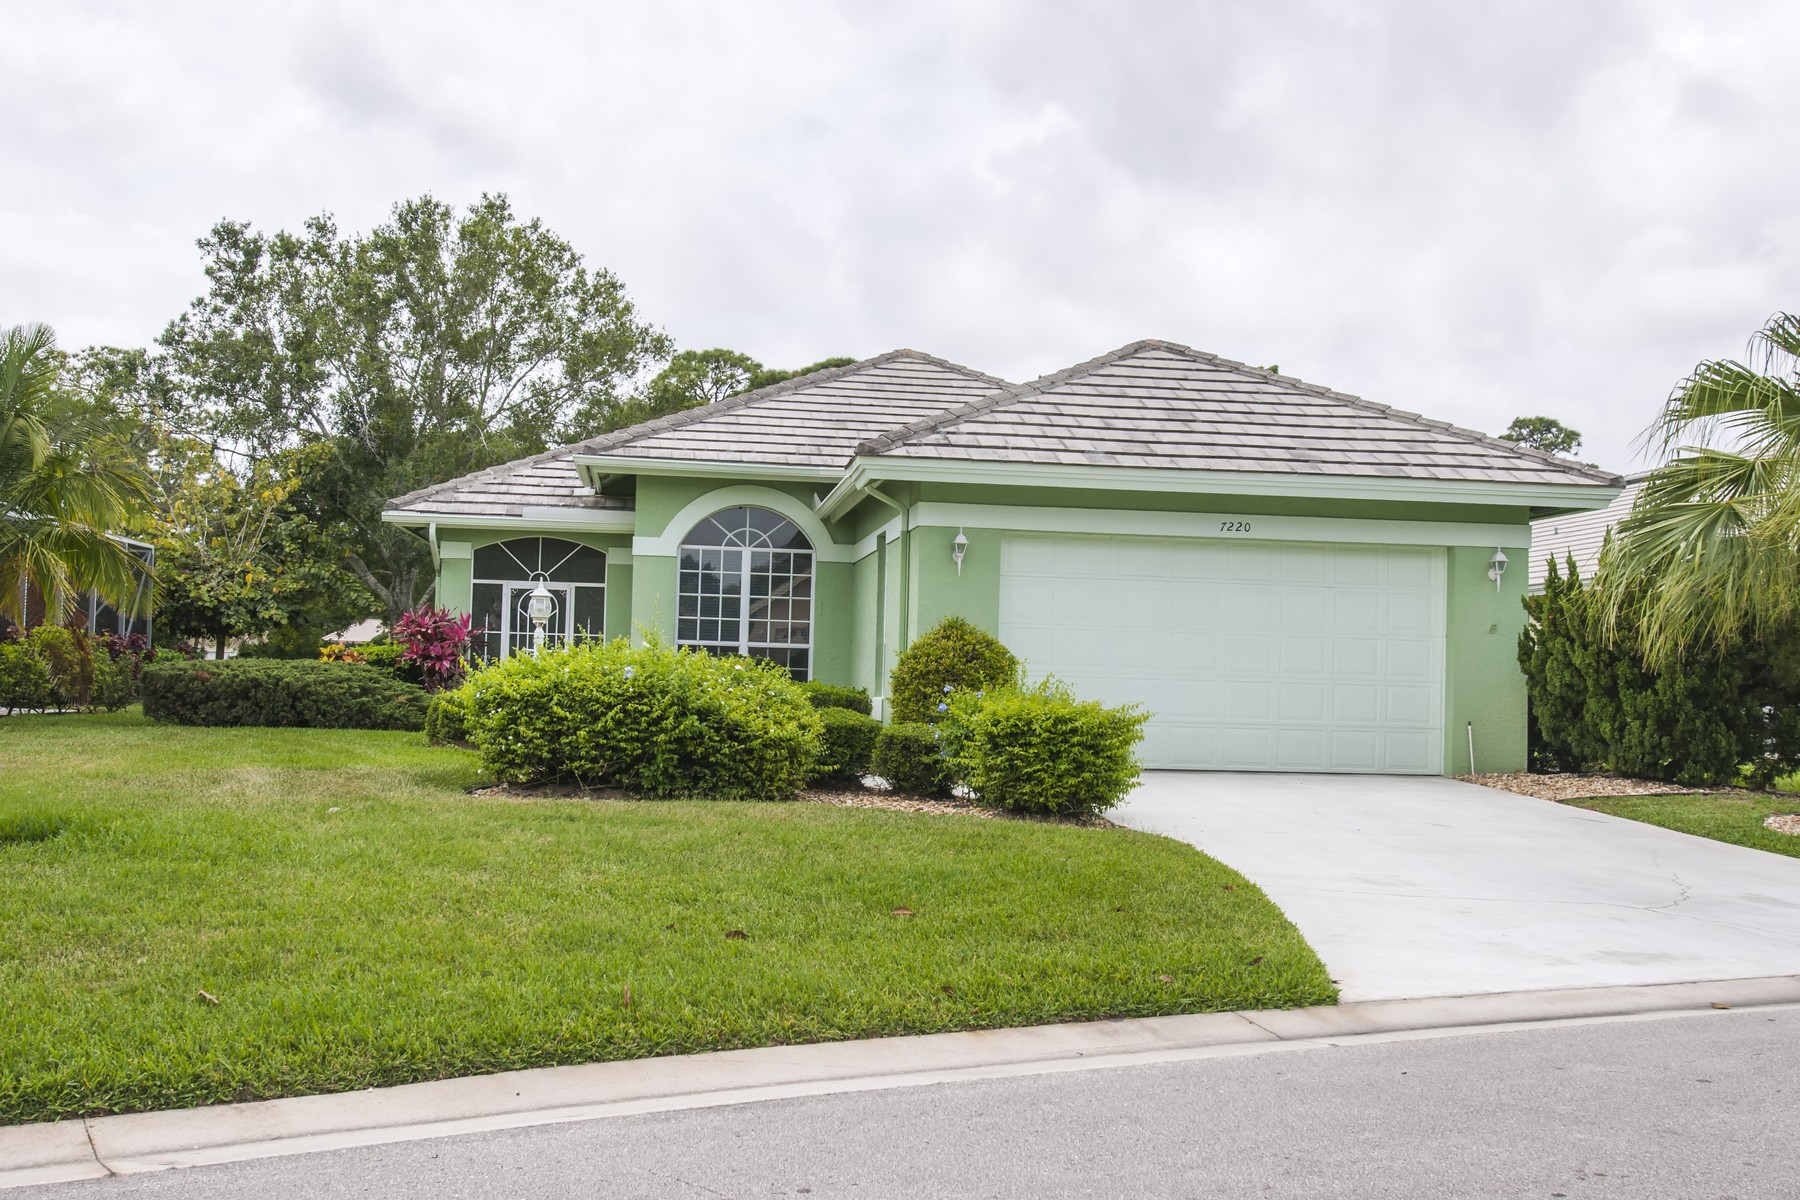 단독 가정 주택 용 매매 에 Private Setting with Lake and Preserve Views 7220 Marsh Terrace Port St. Lucie, 플로리다 34986 미국